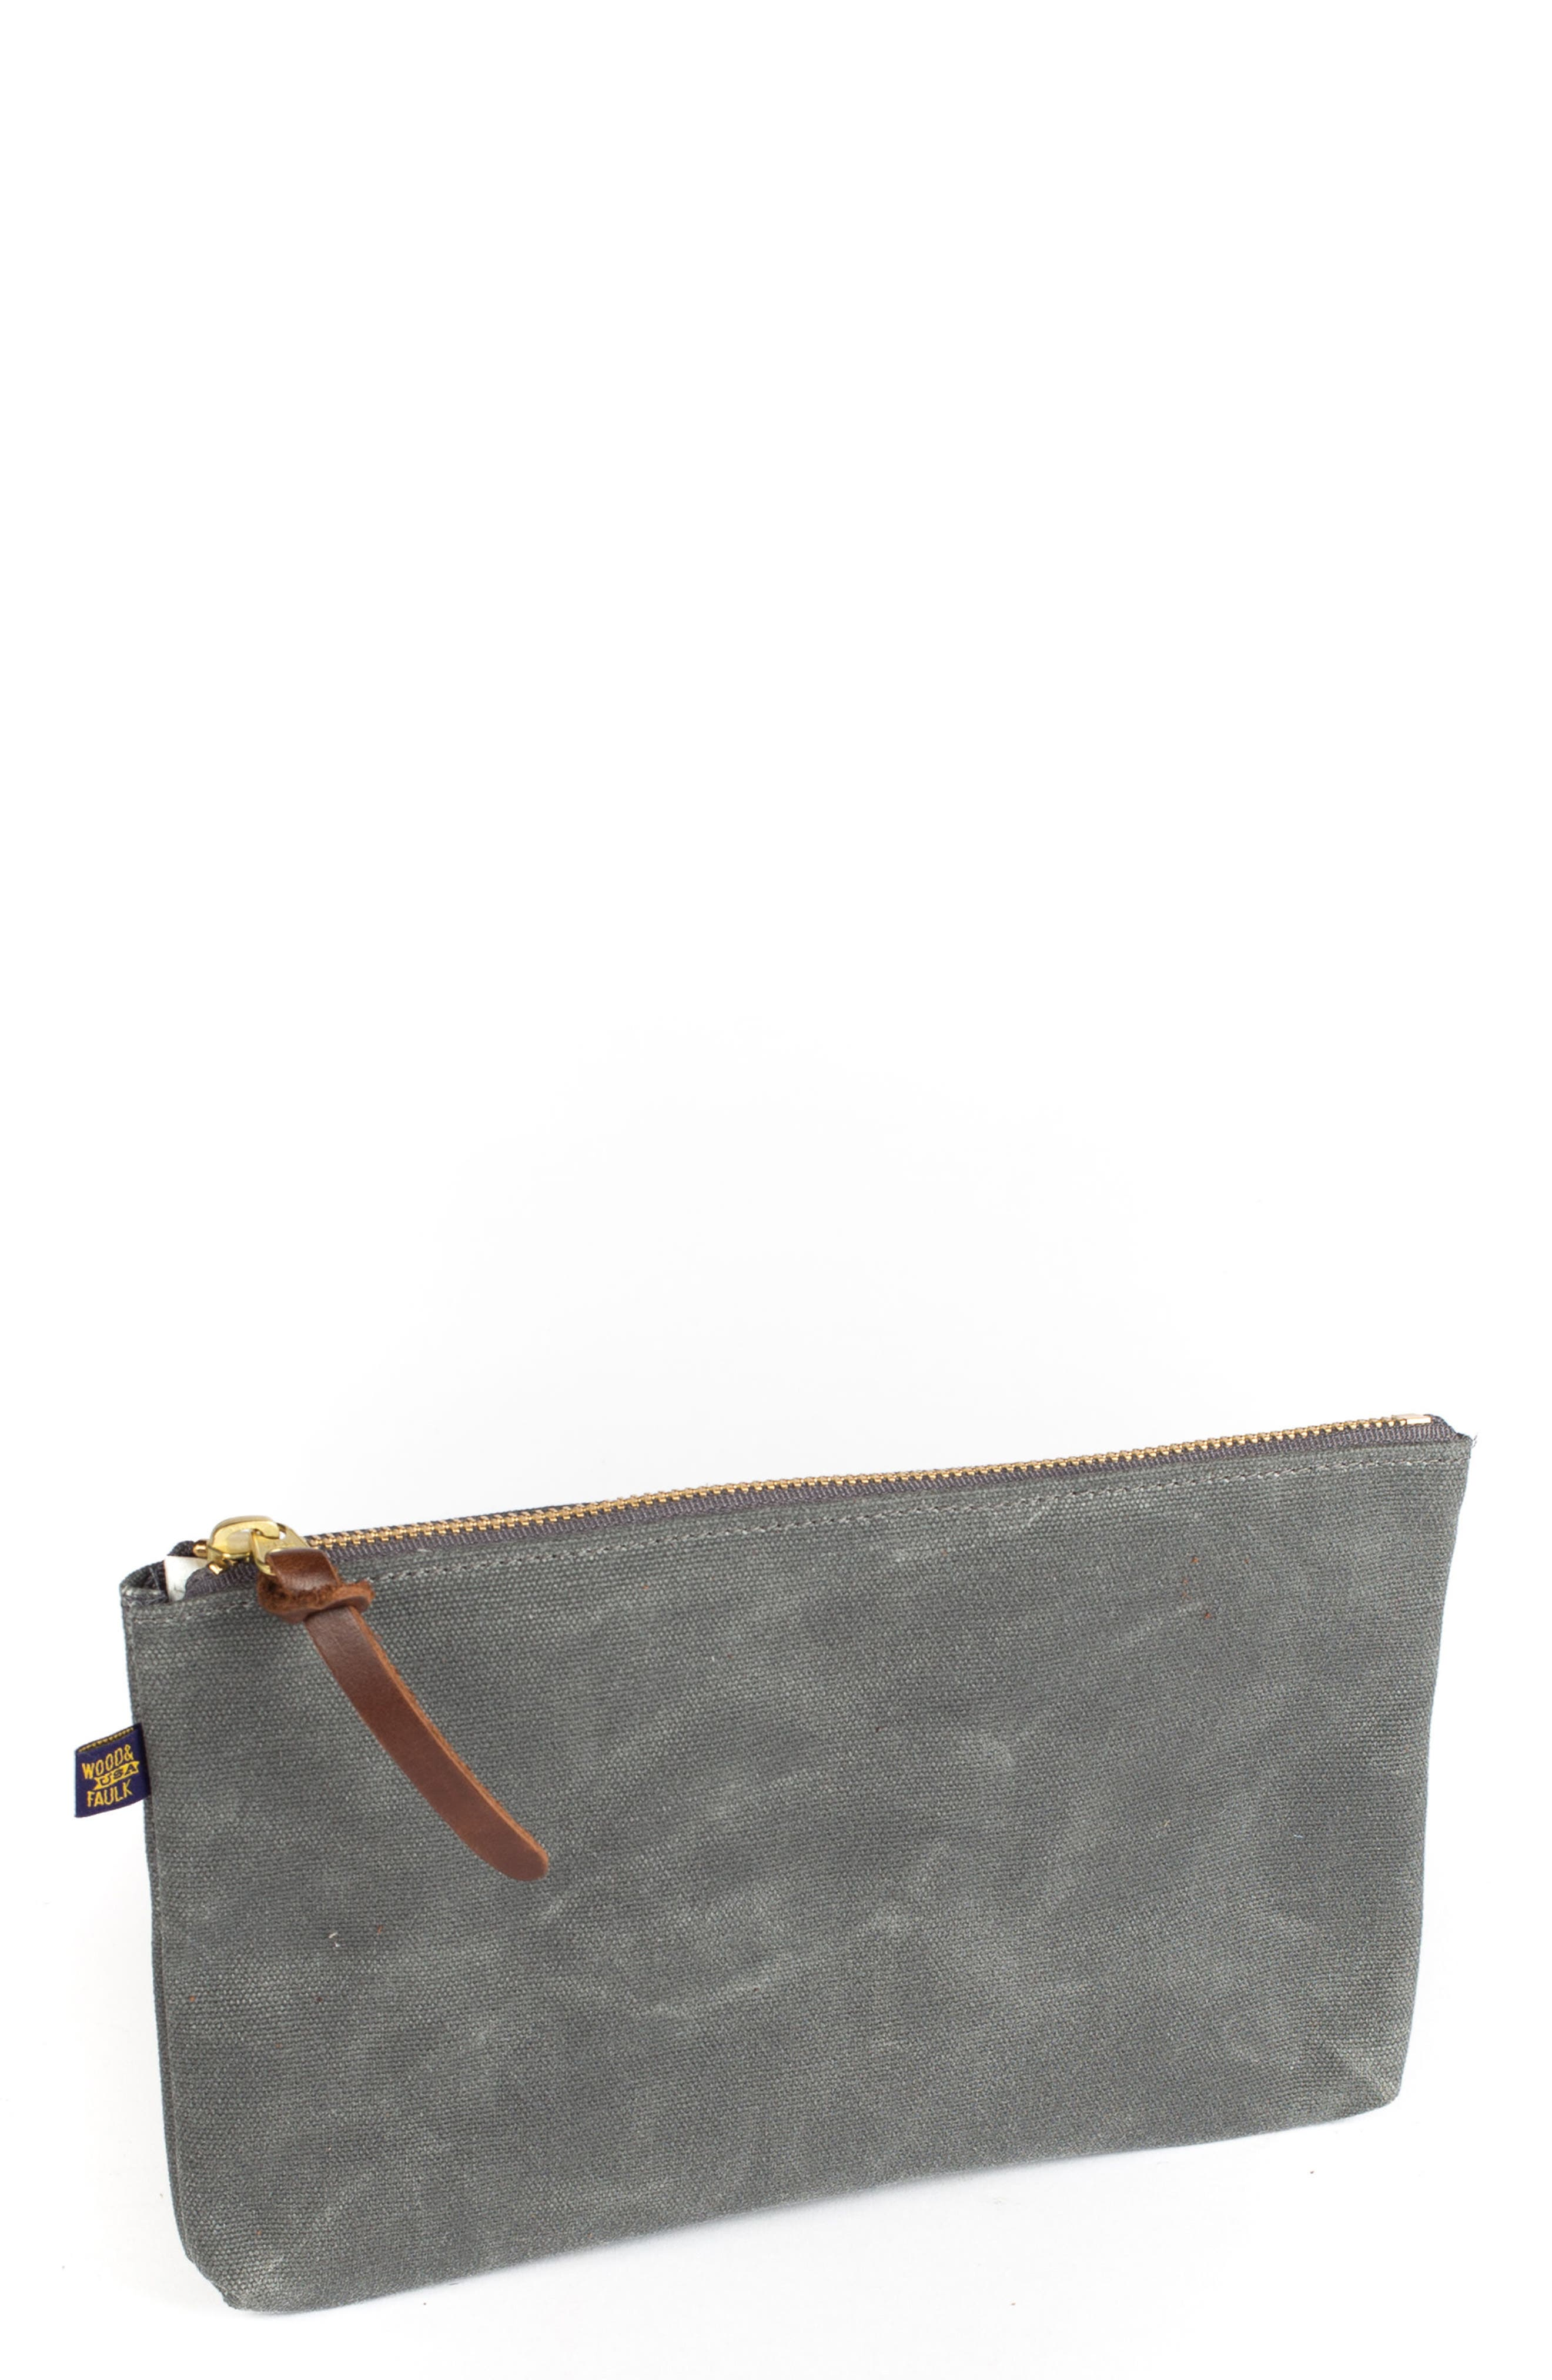 Waxed Canvas Zip Pouch,                         Main,                         color, 022